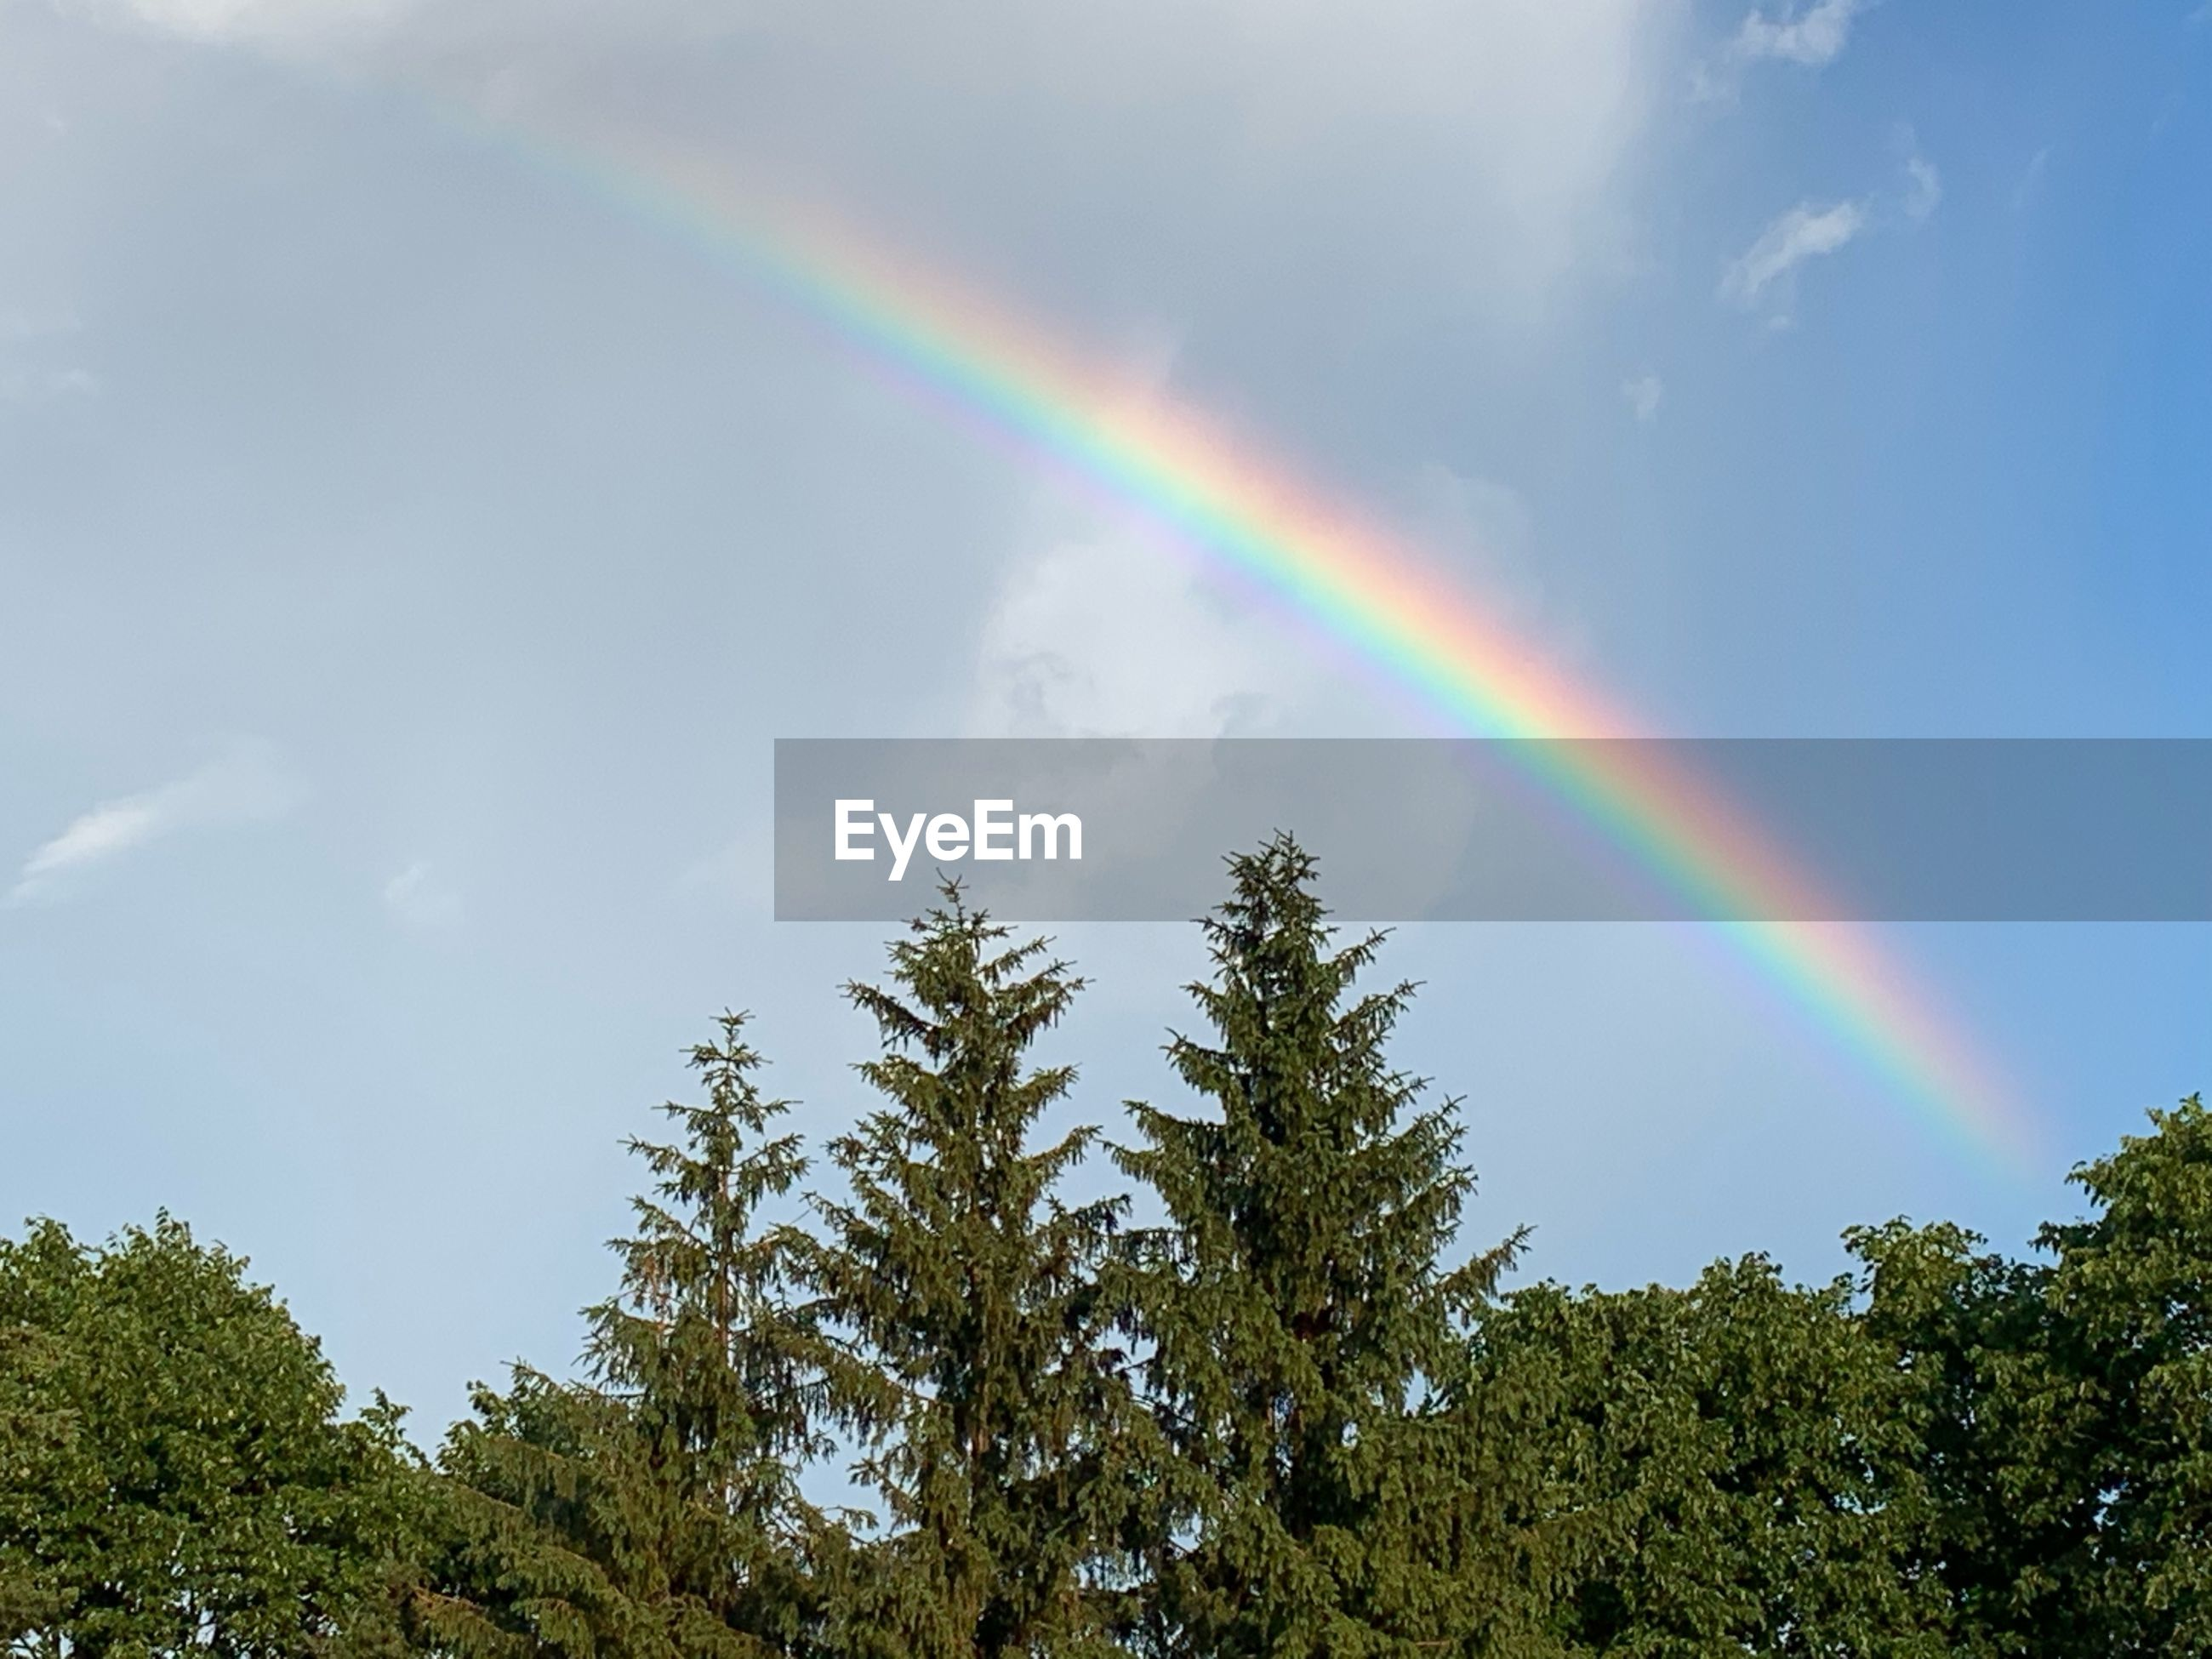 LOW ANGLE VIEW OF RAINBOW OVER TREES AND PLANTS AGAINST SKY